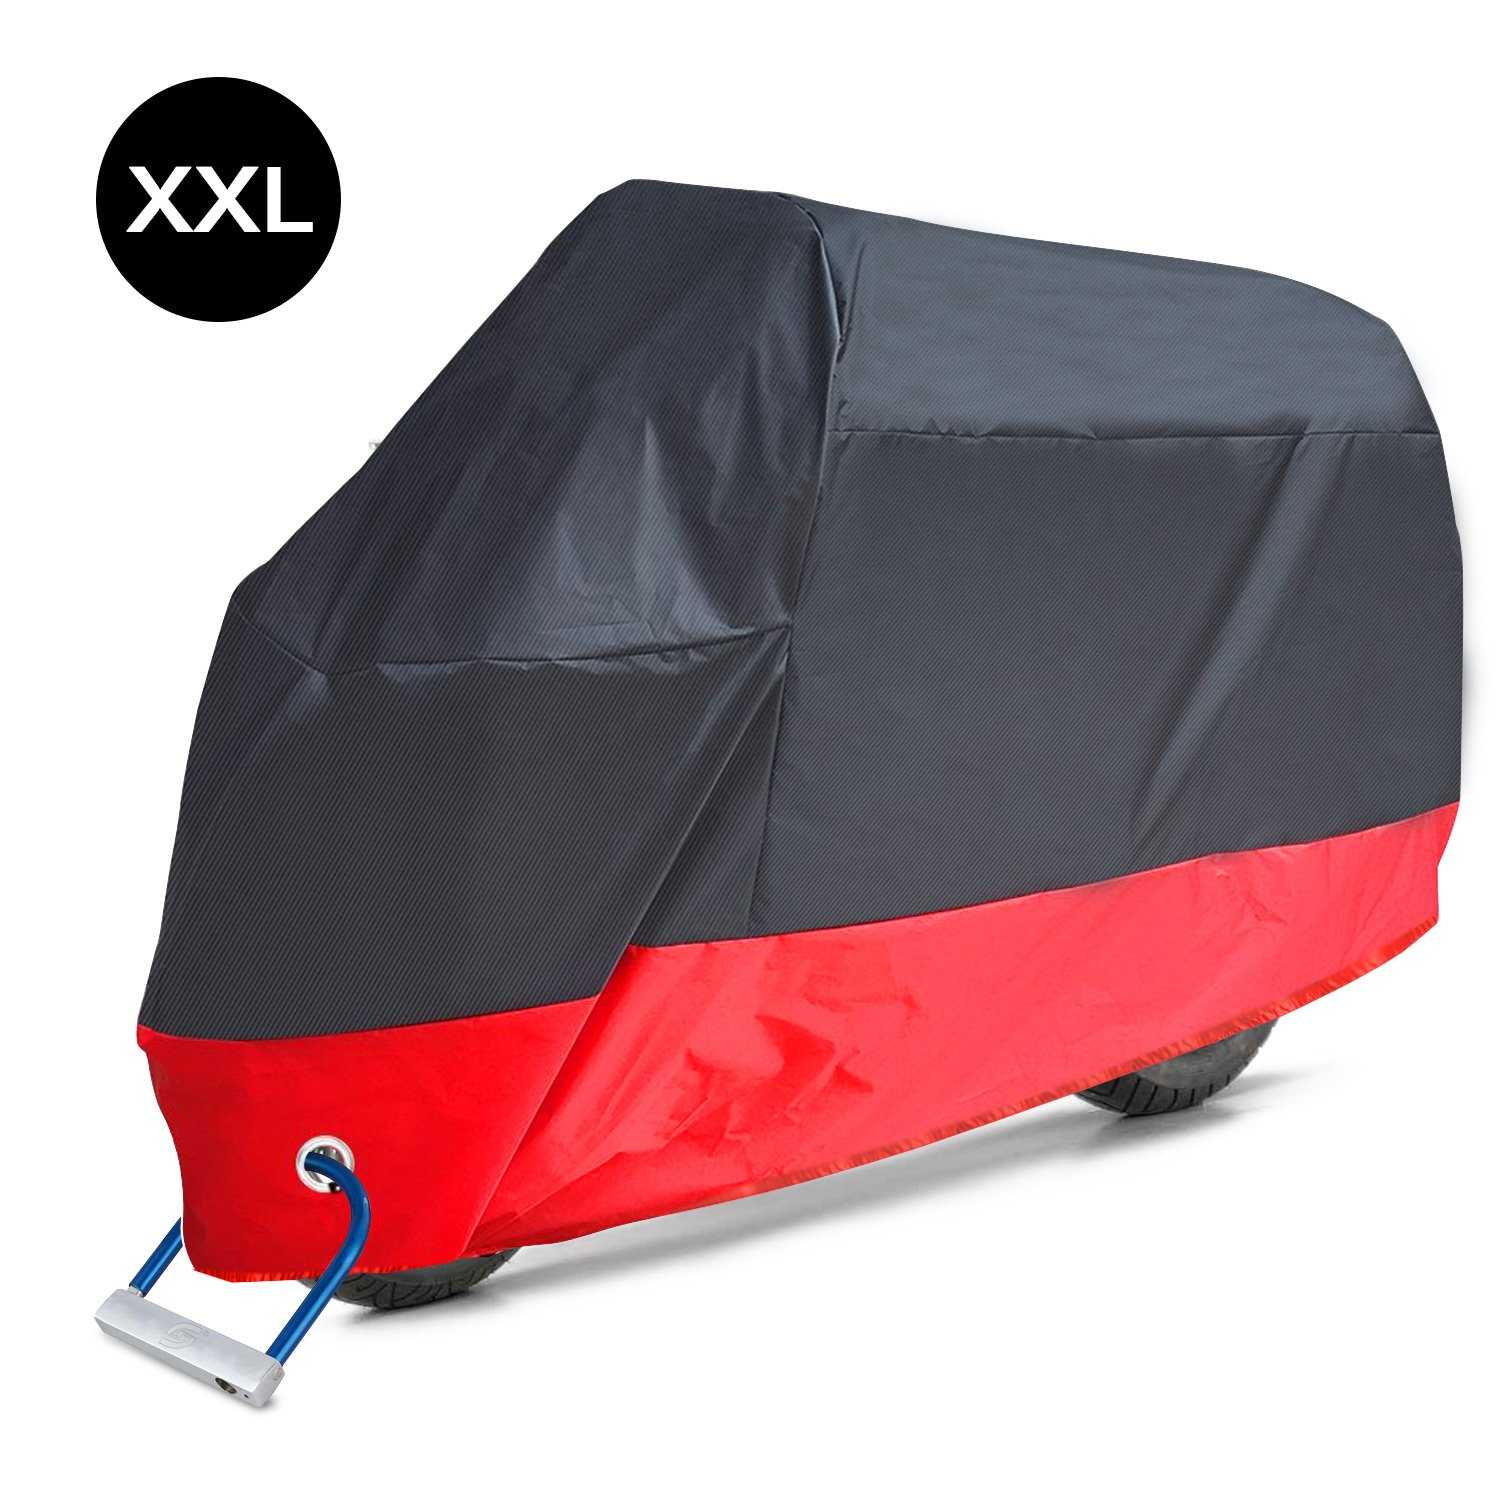 AOAFUN Motorcycle Cover, All Season Waterproof Outdoor Protection,2 Stainless Steel Lock-Holes Design, Fits up to 108'' Motors ,Waterproof ,Anti-Theft, Durable & Tear Proof(XXL,Black& Red) by Aoafun